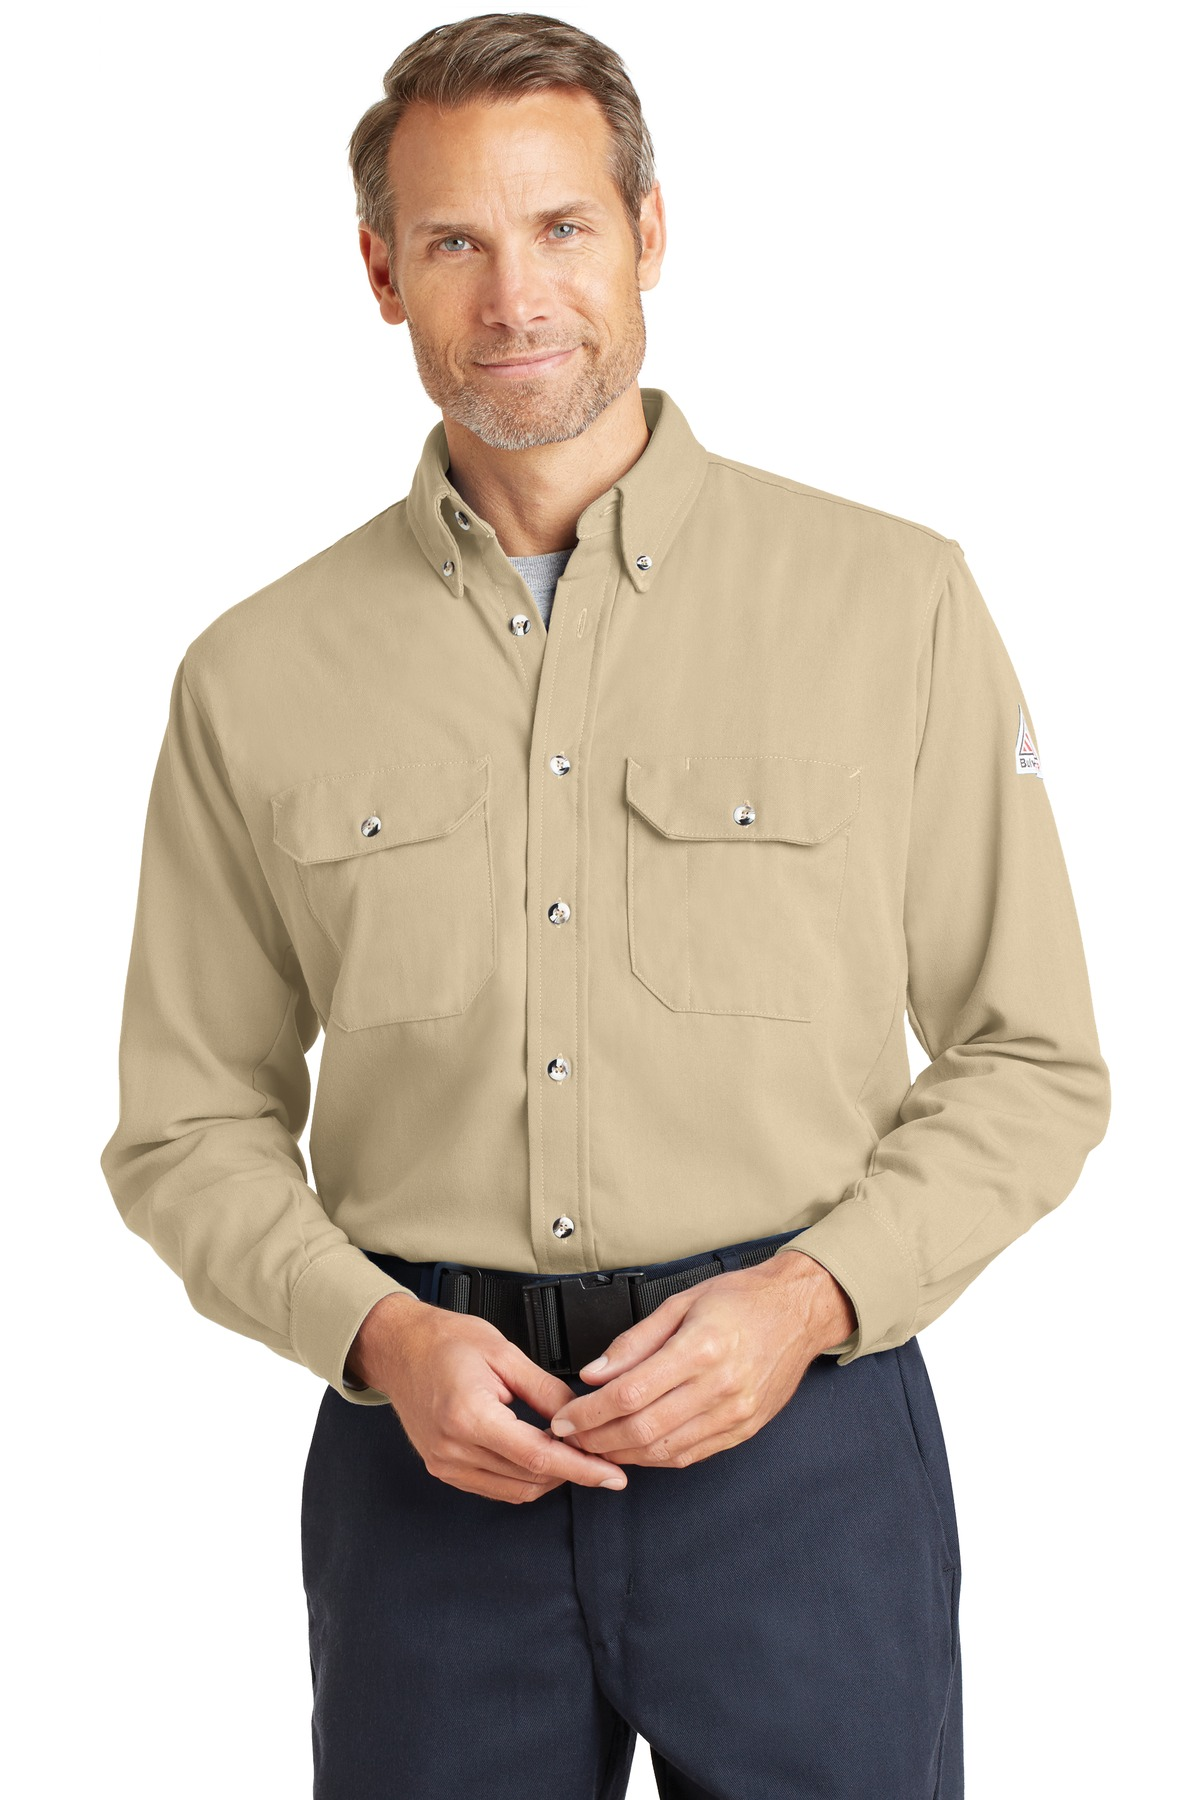 Bulwark  CoolTouch  SMU2 - 2 Dress Uniform Shirt